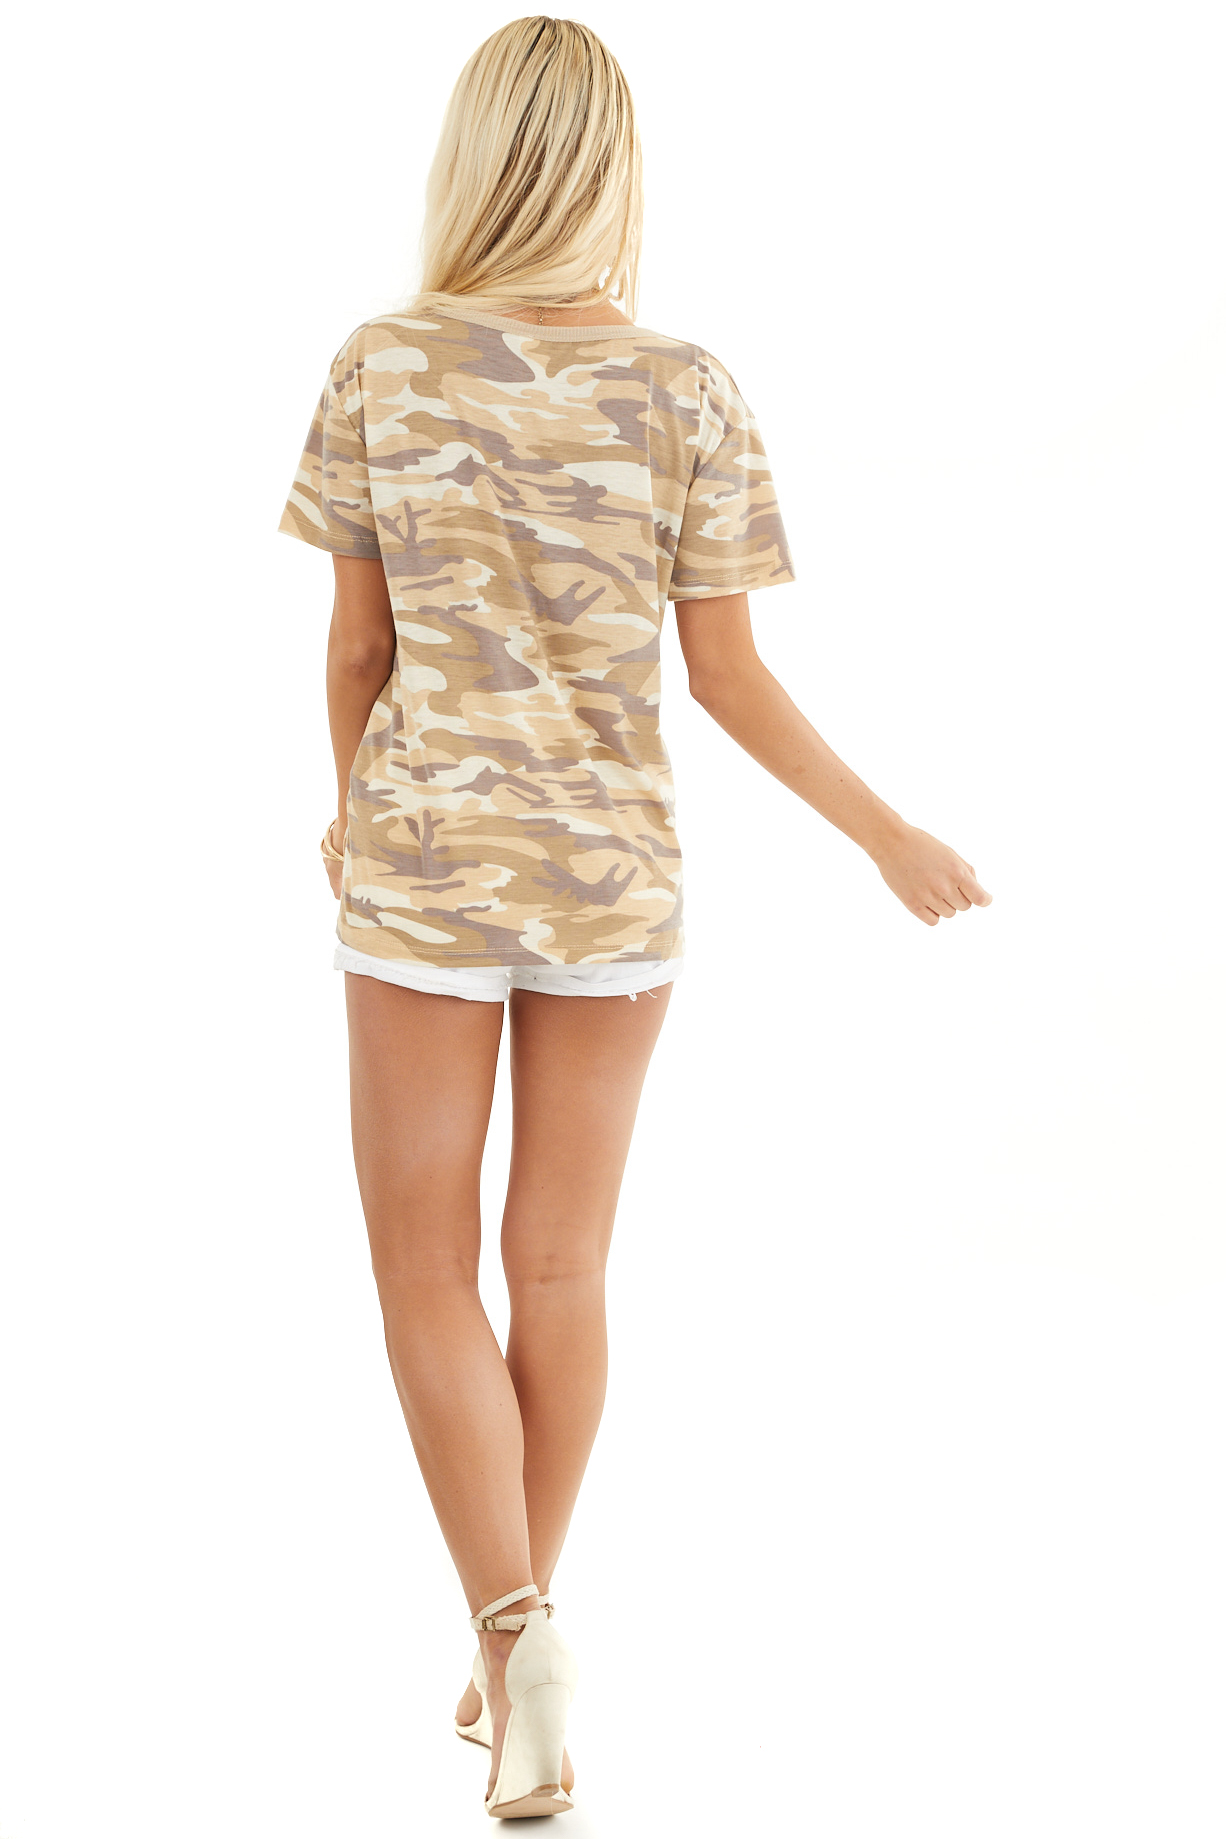 Sand Camo Print Short Sleeve Top with Ribbed Ringer Neckline back full body